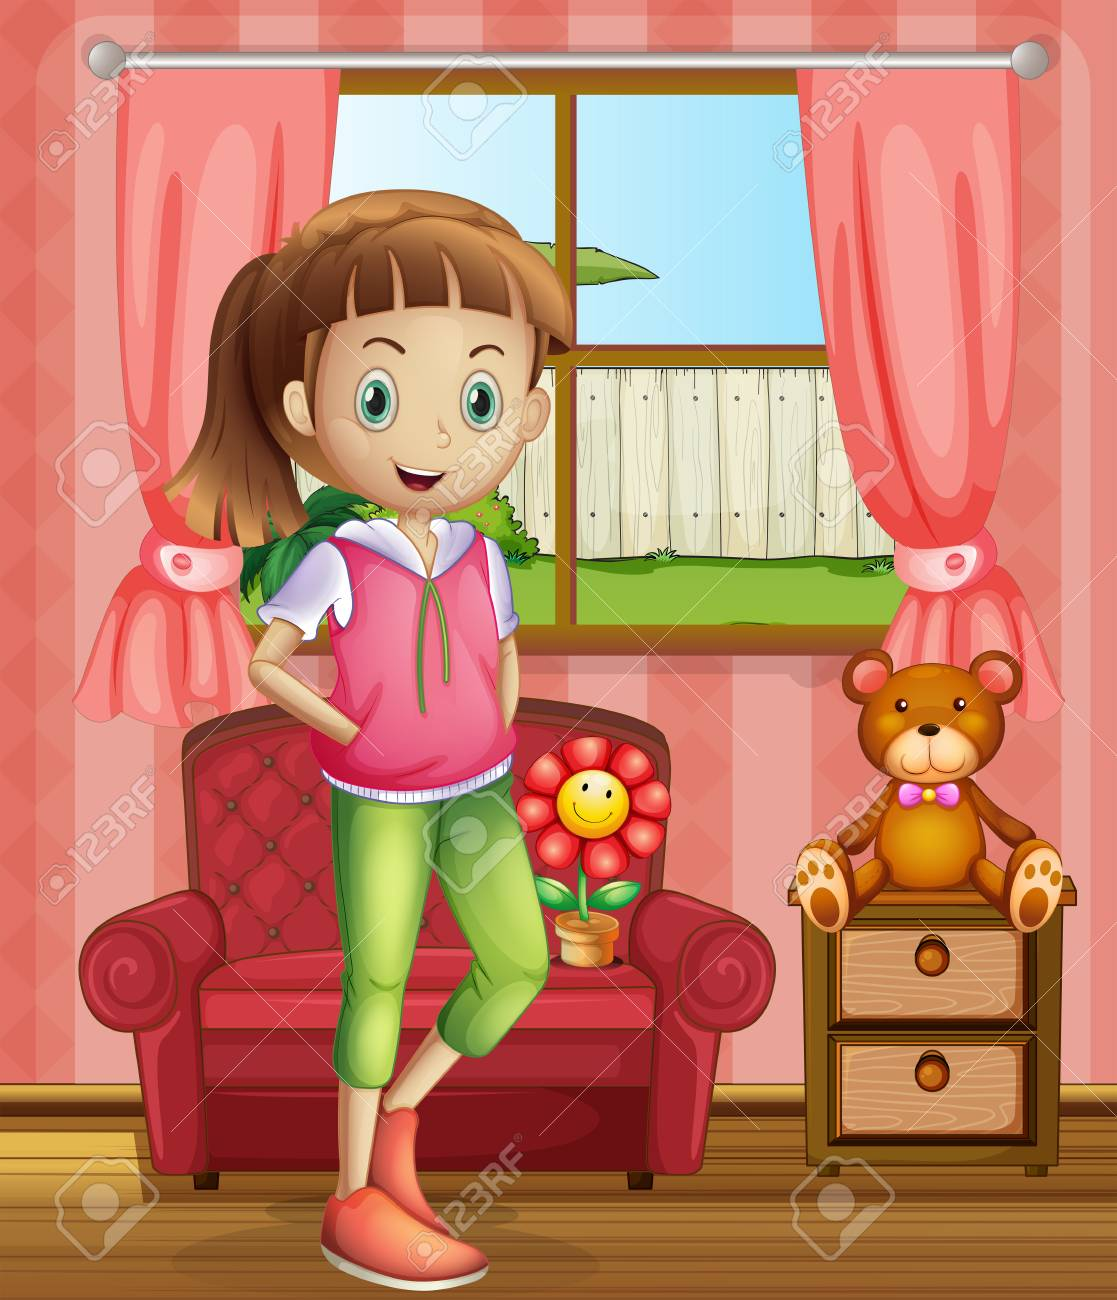 Illustration of a cute young girl inside the house Stock Vector - 22210965